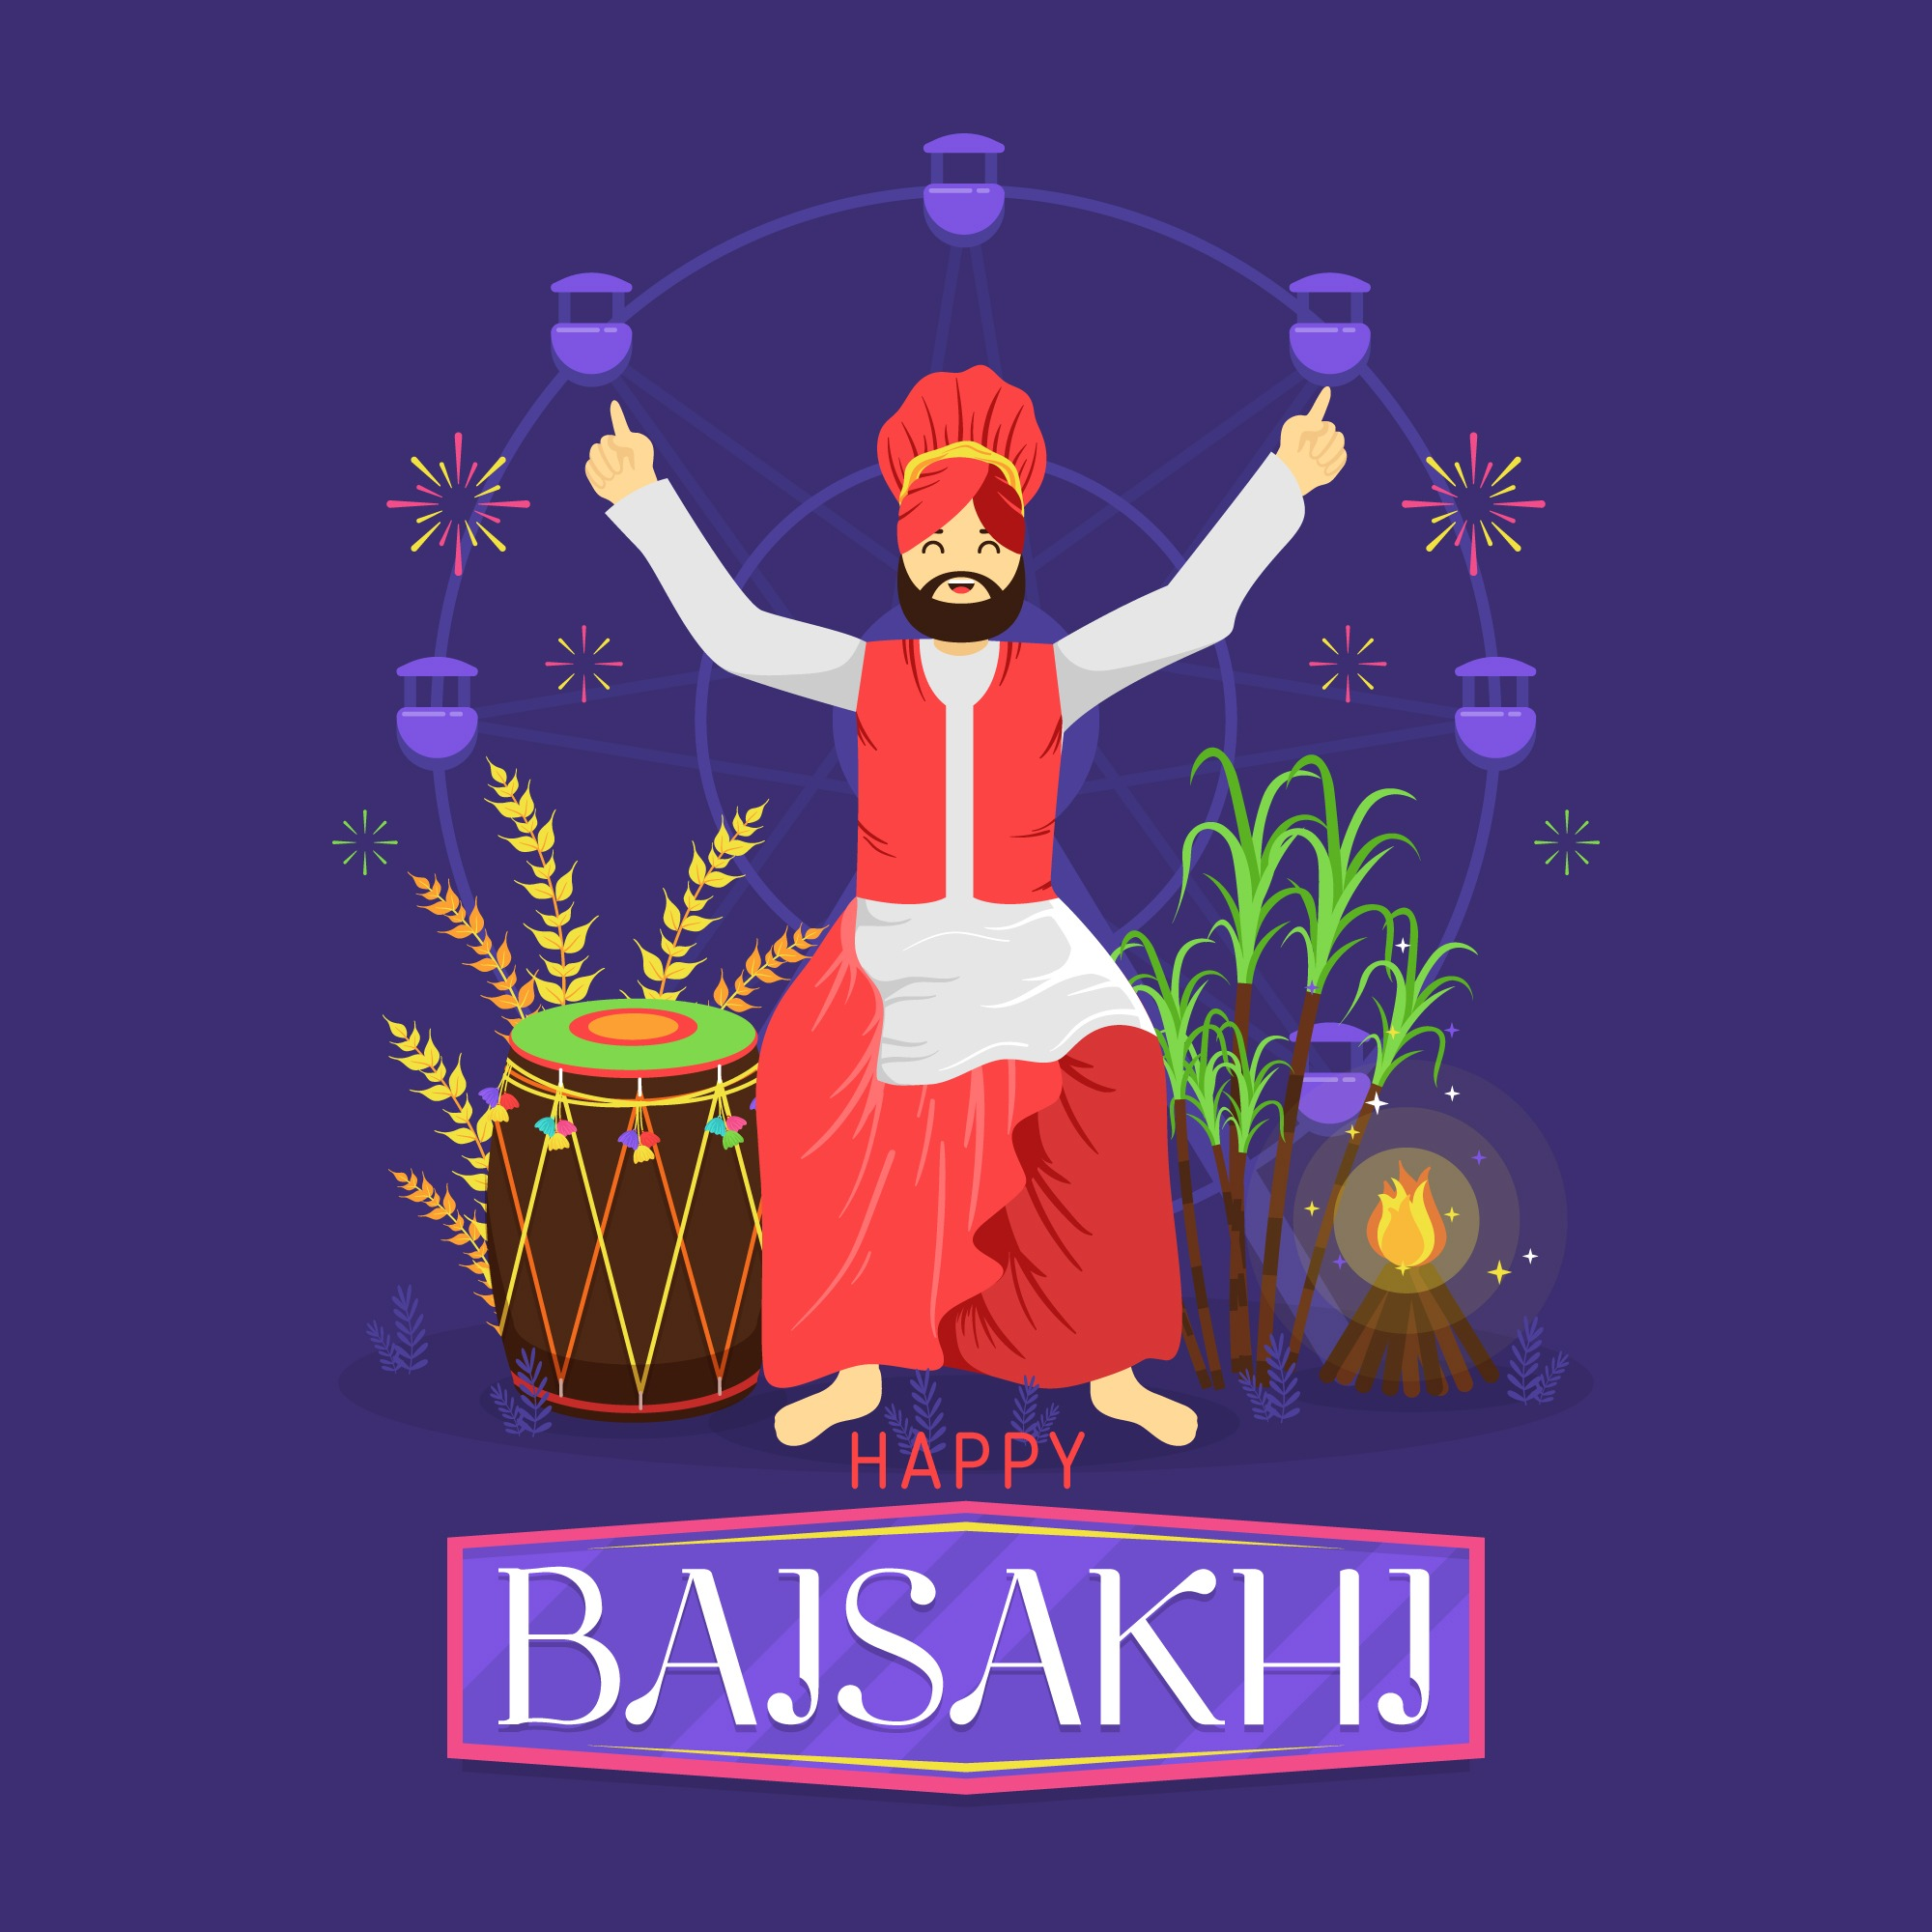 happy baisakhi picture download